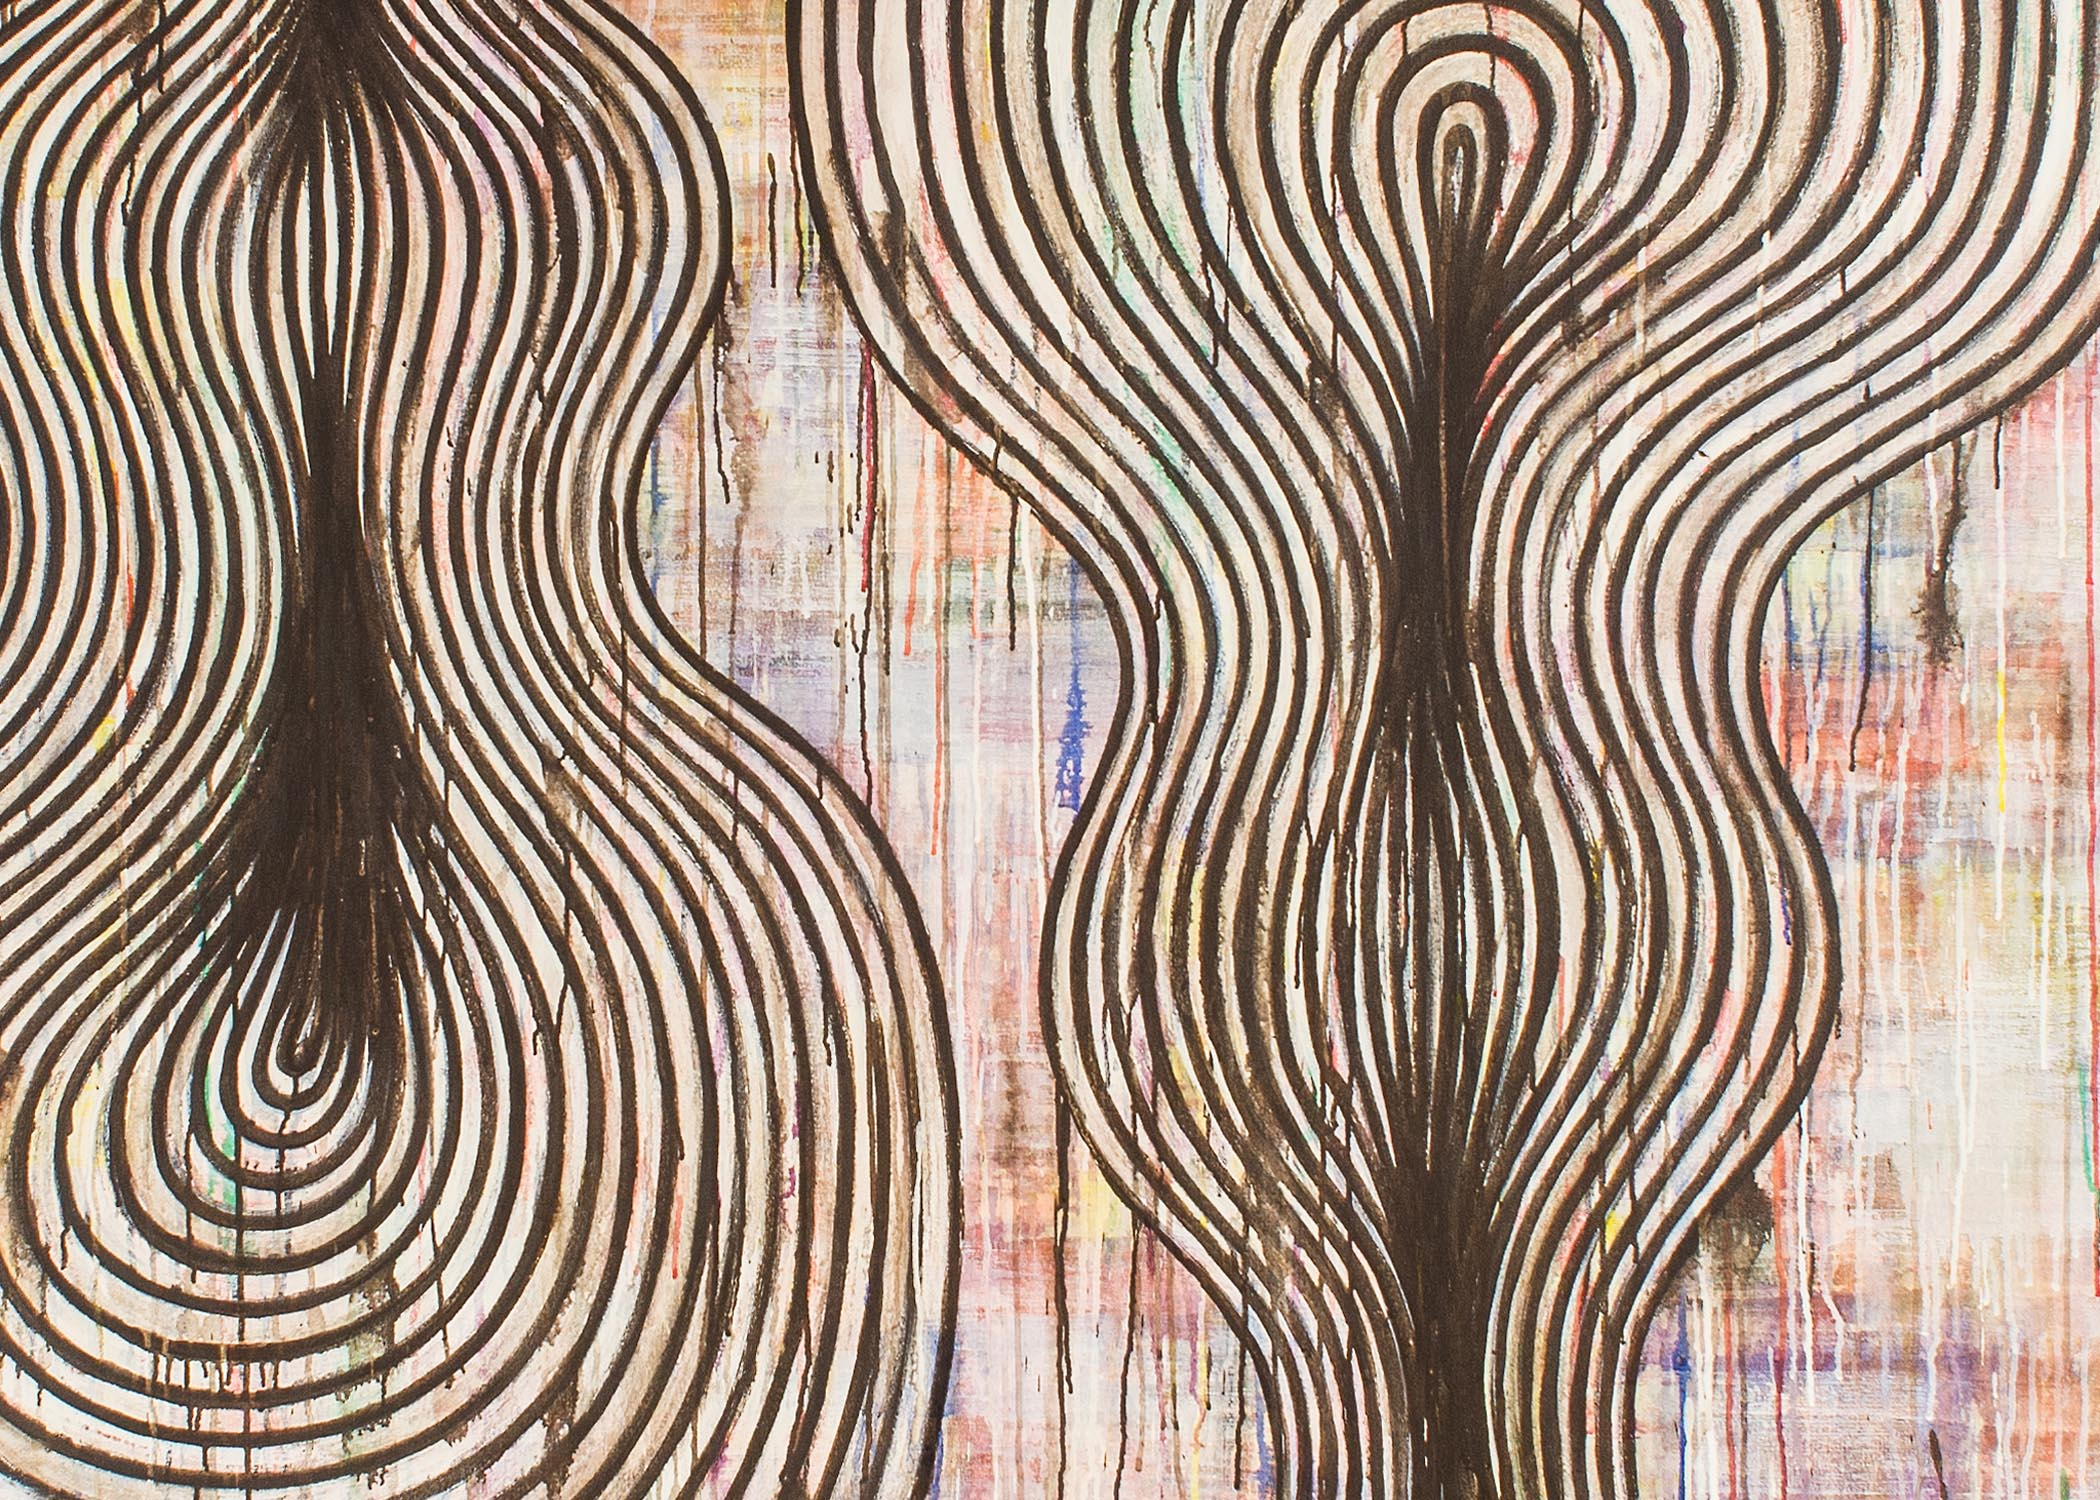 Steven Cushner, Echo #3 (detail), acrylic on canvas